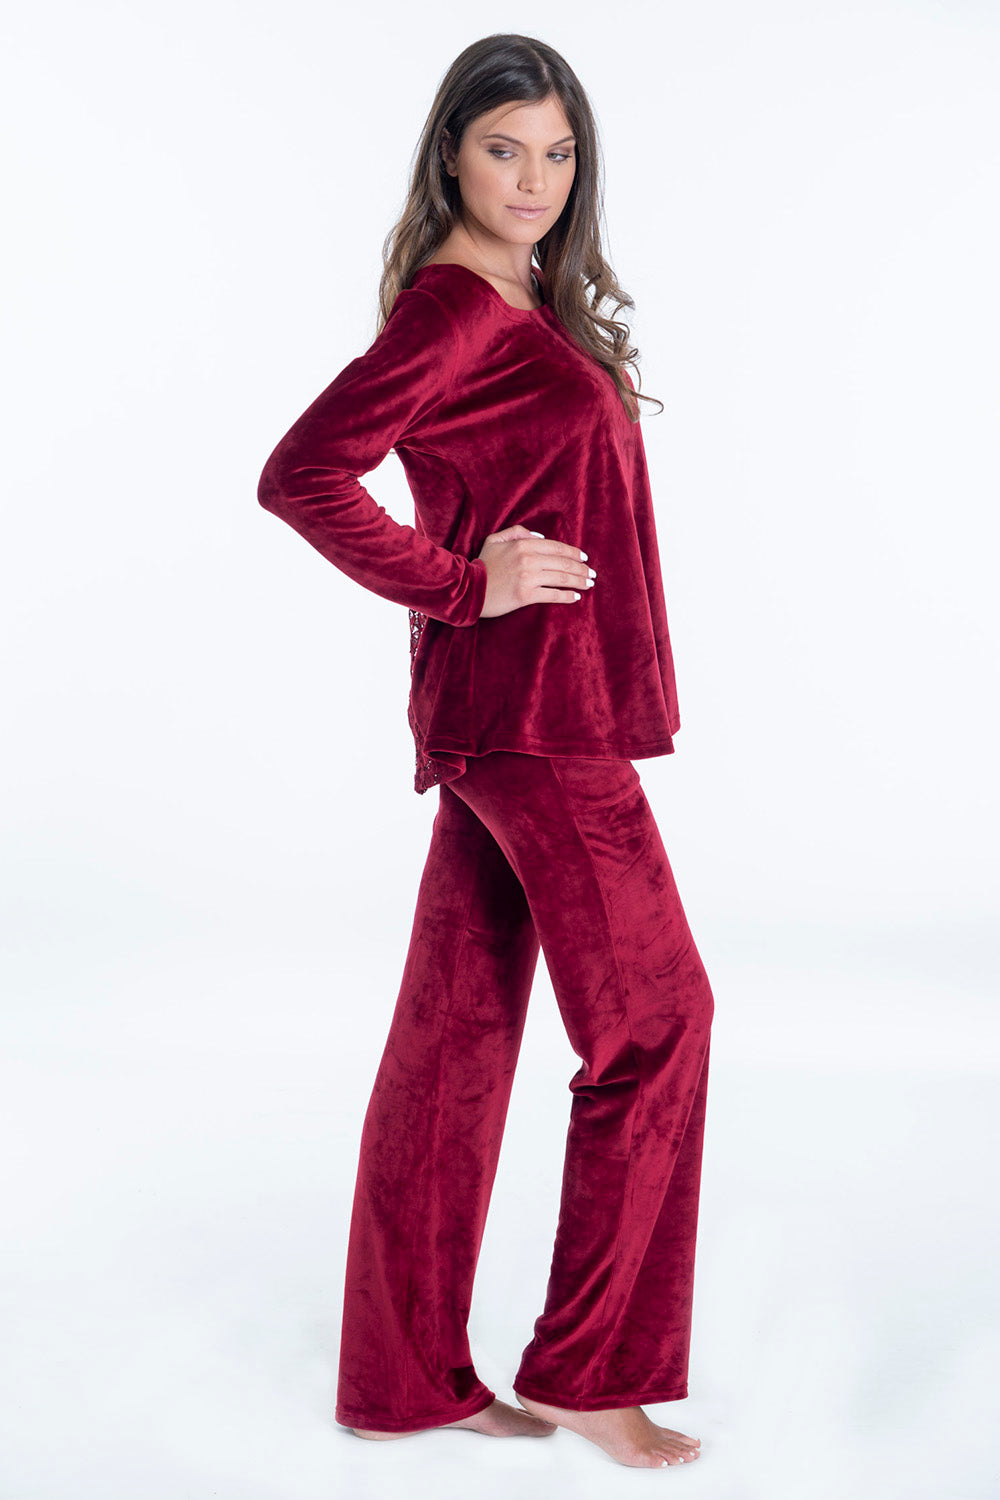 Pixie oversized velvet loungewear jumper with scoop neck and lace back